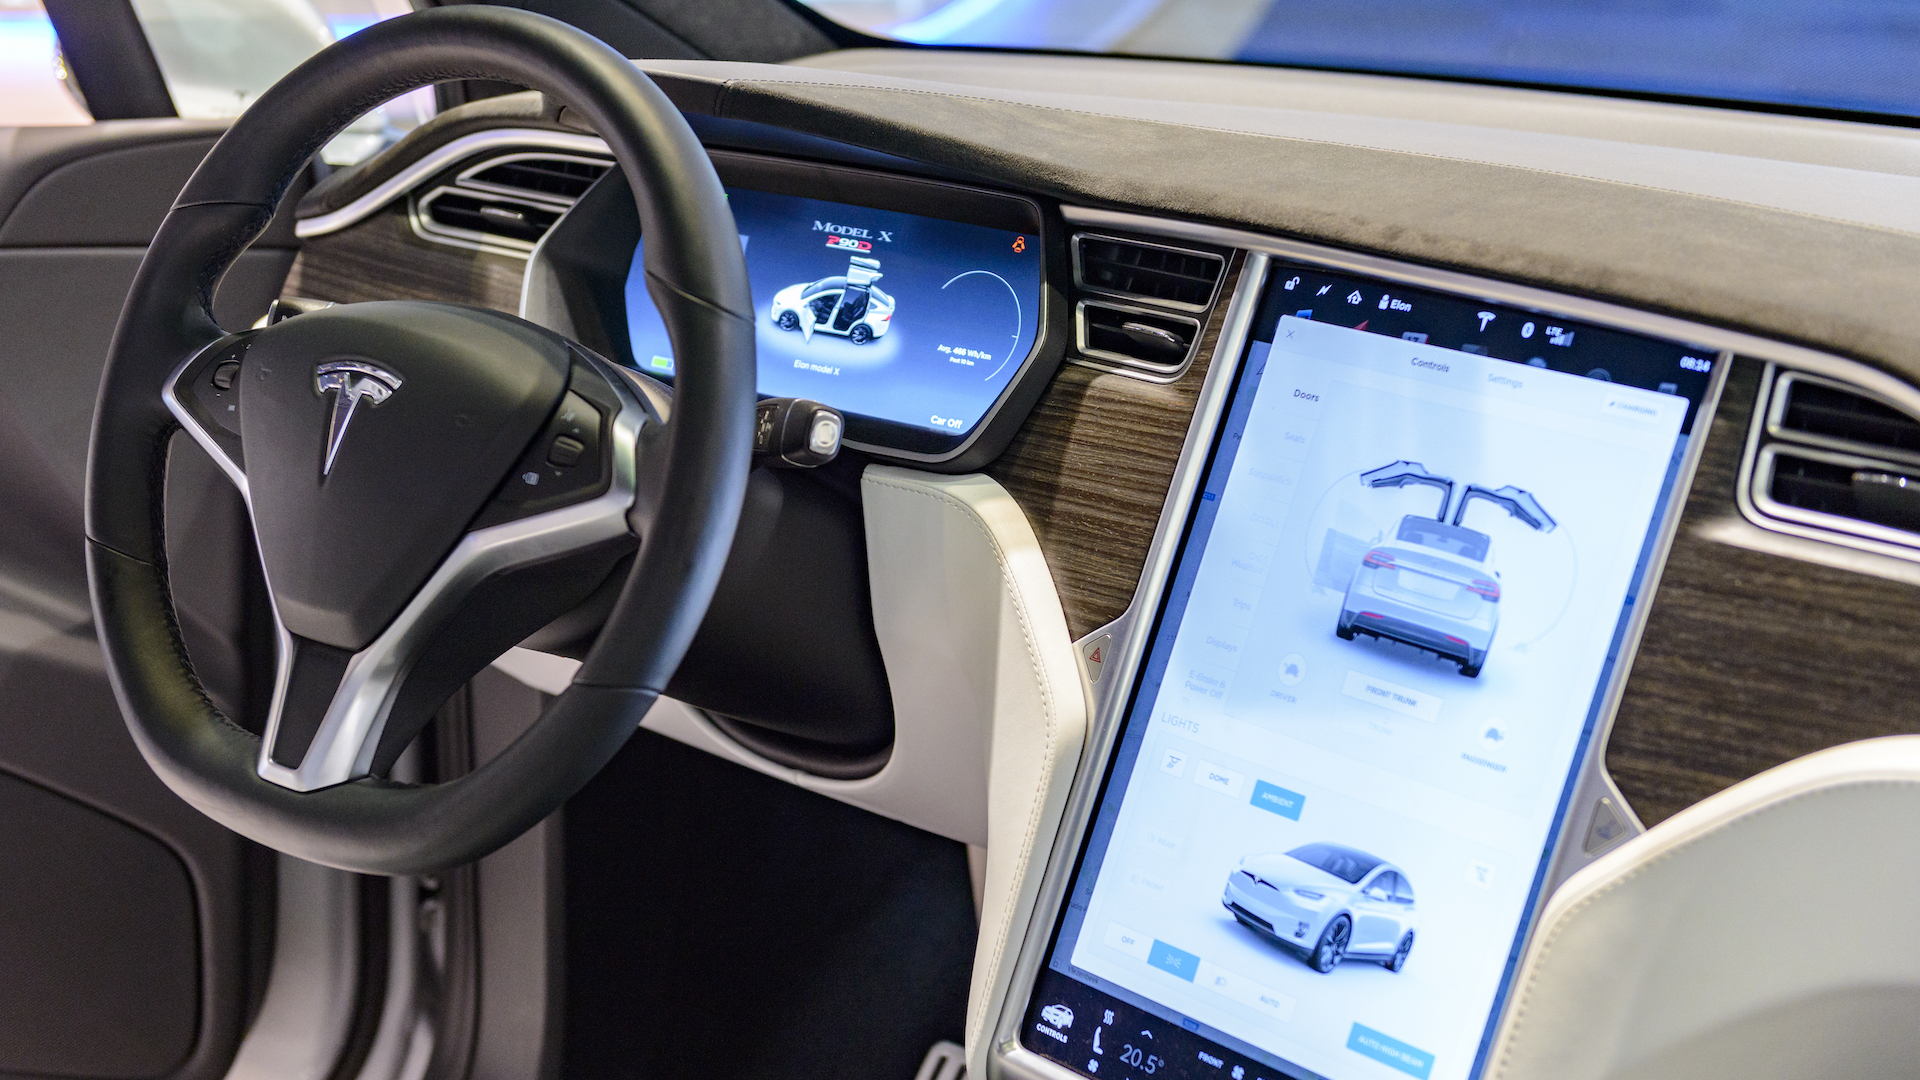 Tesla Bows to NHTSA Pressure, Recalls 135,000 Cars Over 'Inevitable' Touchscreen Failure